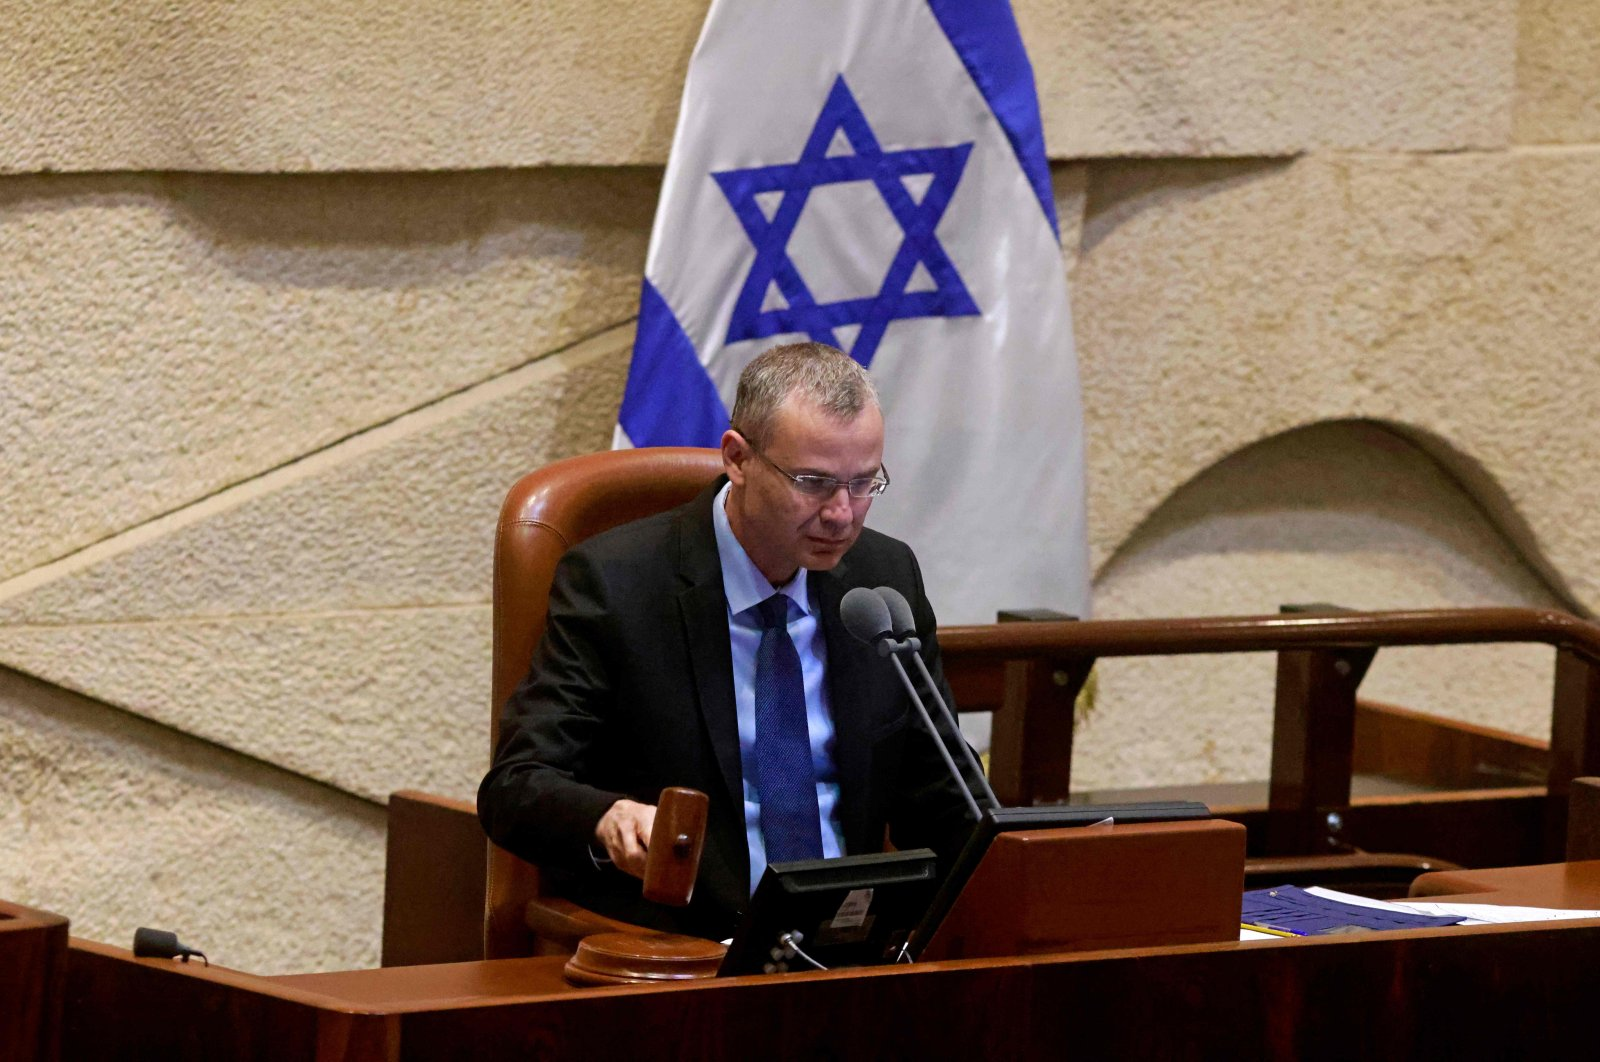 Knesset Speaker Yariv Levin gives a statement on the coalition deal ahead of a confidence vote on the new government, in Jerusalem, Israel, June 7, 2021. (AFP Photo)